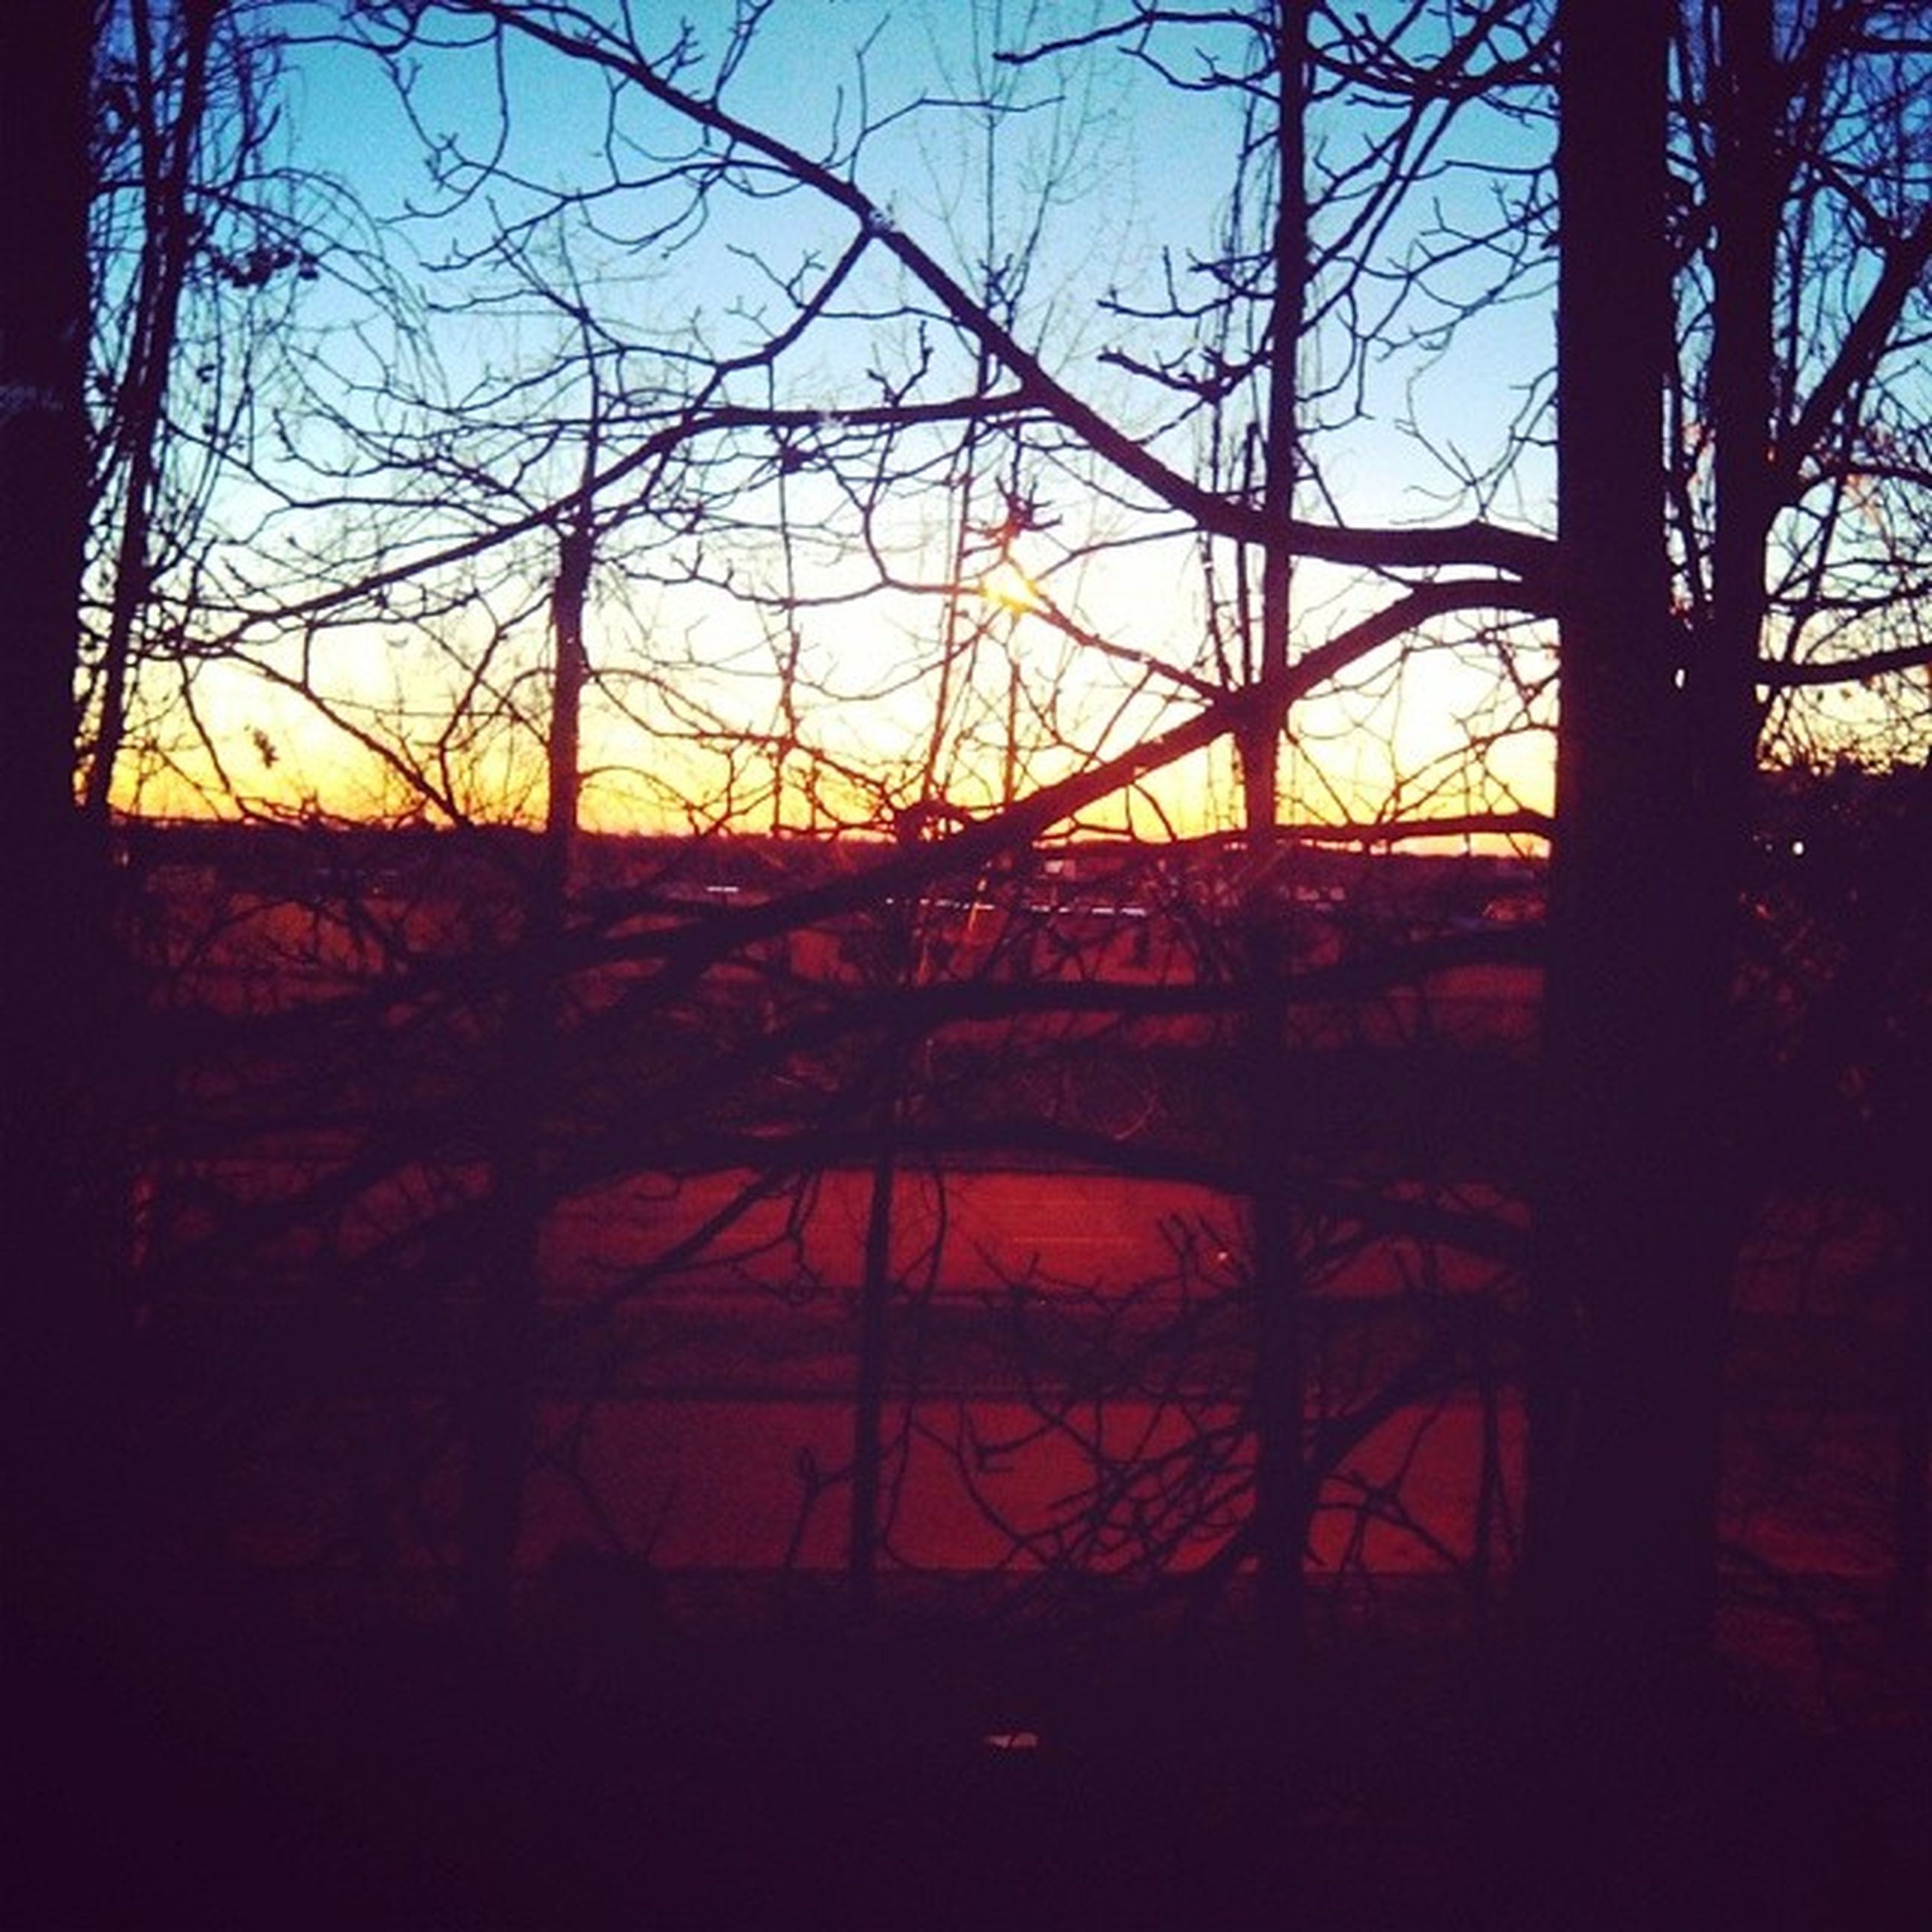 sunset, silhouette, bare tree, tree, branch, sky, tranquility, orange color, tranquil scene, nature, scenics, beauty in nature, dusk, clear sky, dark, sun, no people, sunlight, fence, railing